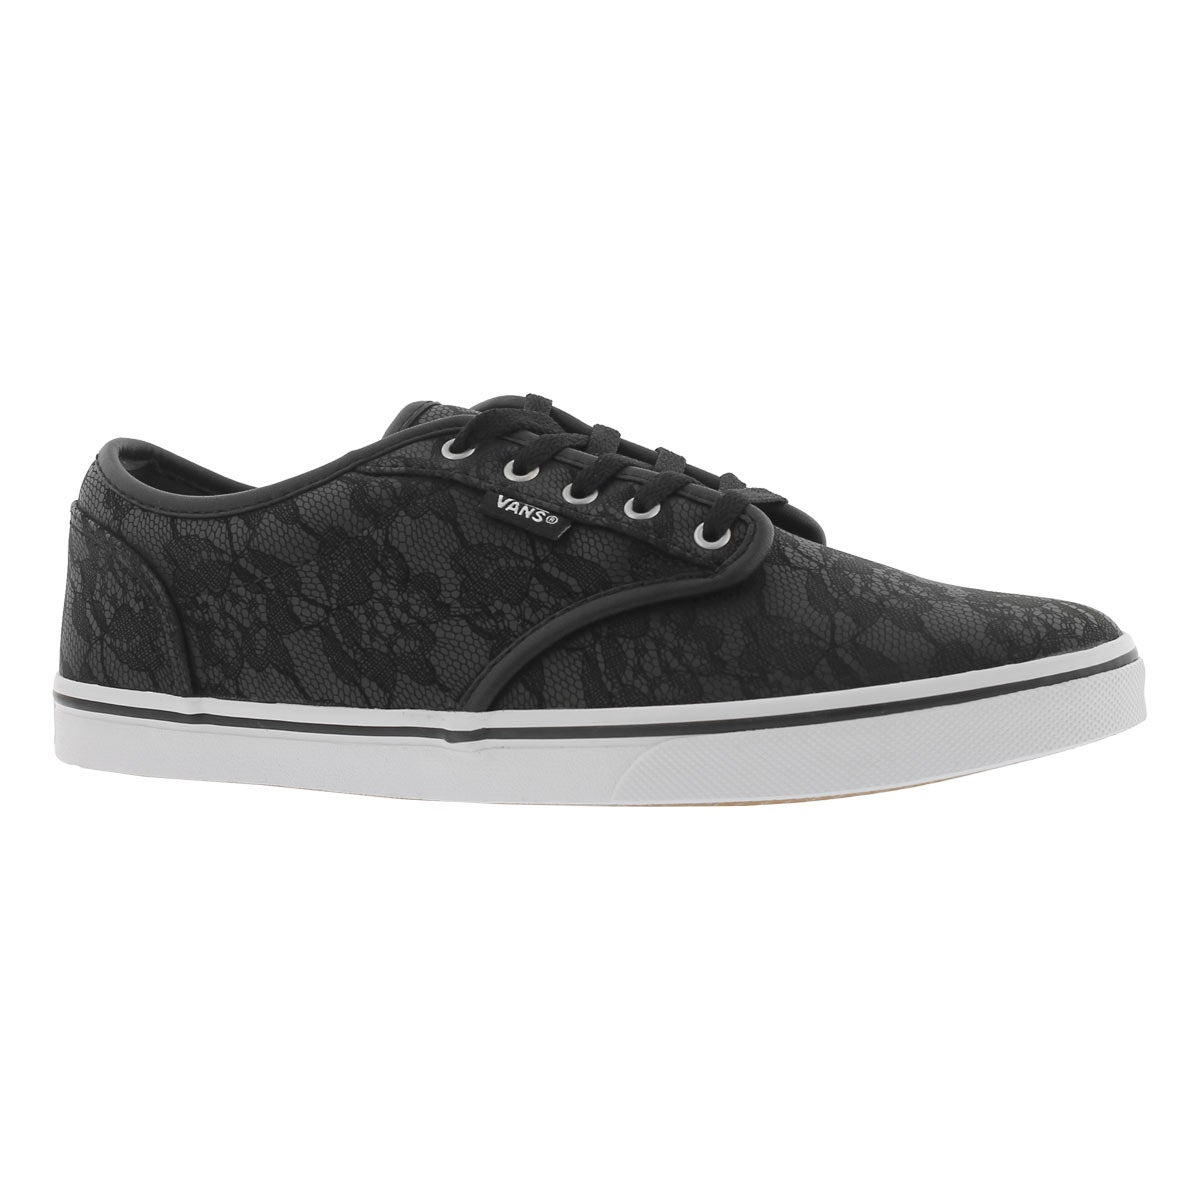 Women's ATWOOD LOW black lace laceup sneakers